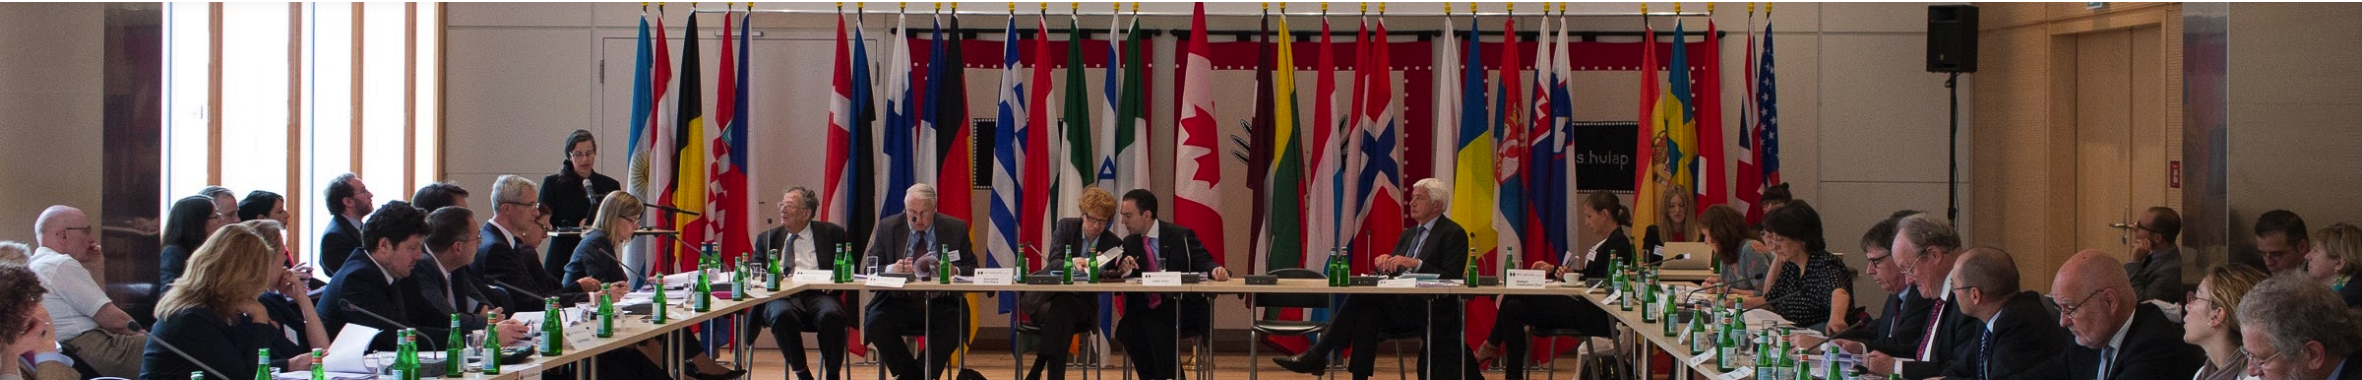 On May 26, 2016, the 31 (32 as of 2018, with the addition of Bulgaria) member states of the  International Holocaust Remembrance Alliance  ( IHRA ), of which the United States is a member, adopted a non-legally binding  IHRA Definition of Antisemitism  at its plenary in Bucharest.